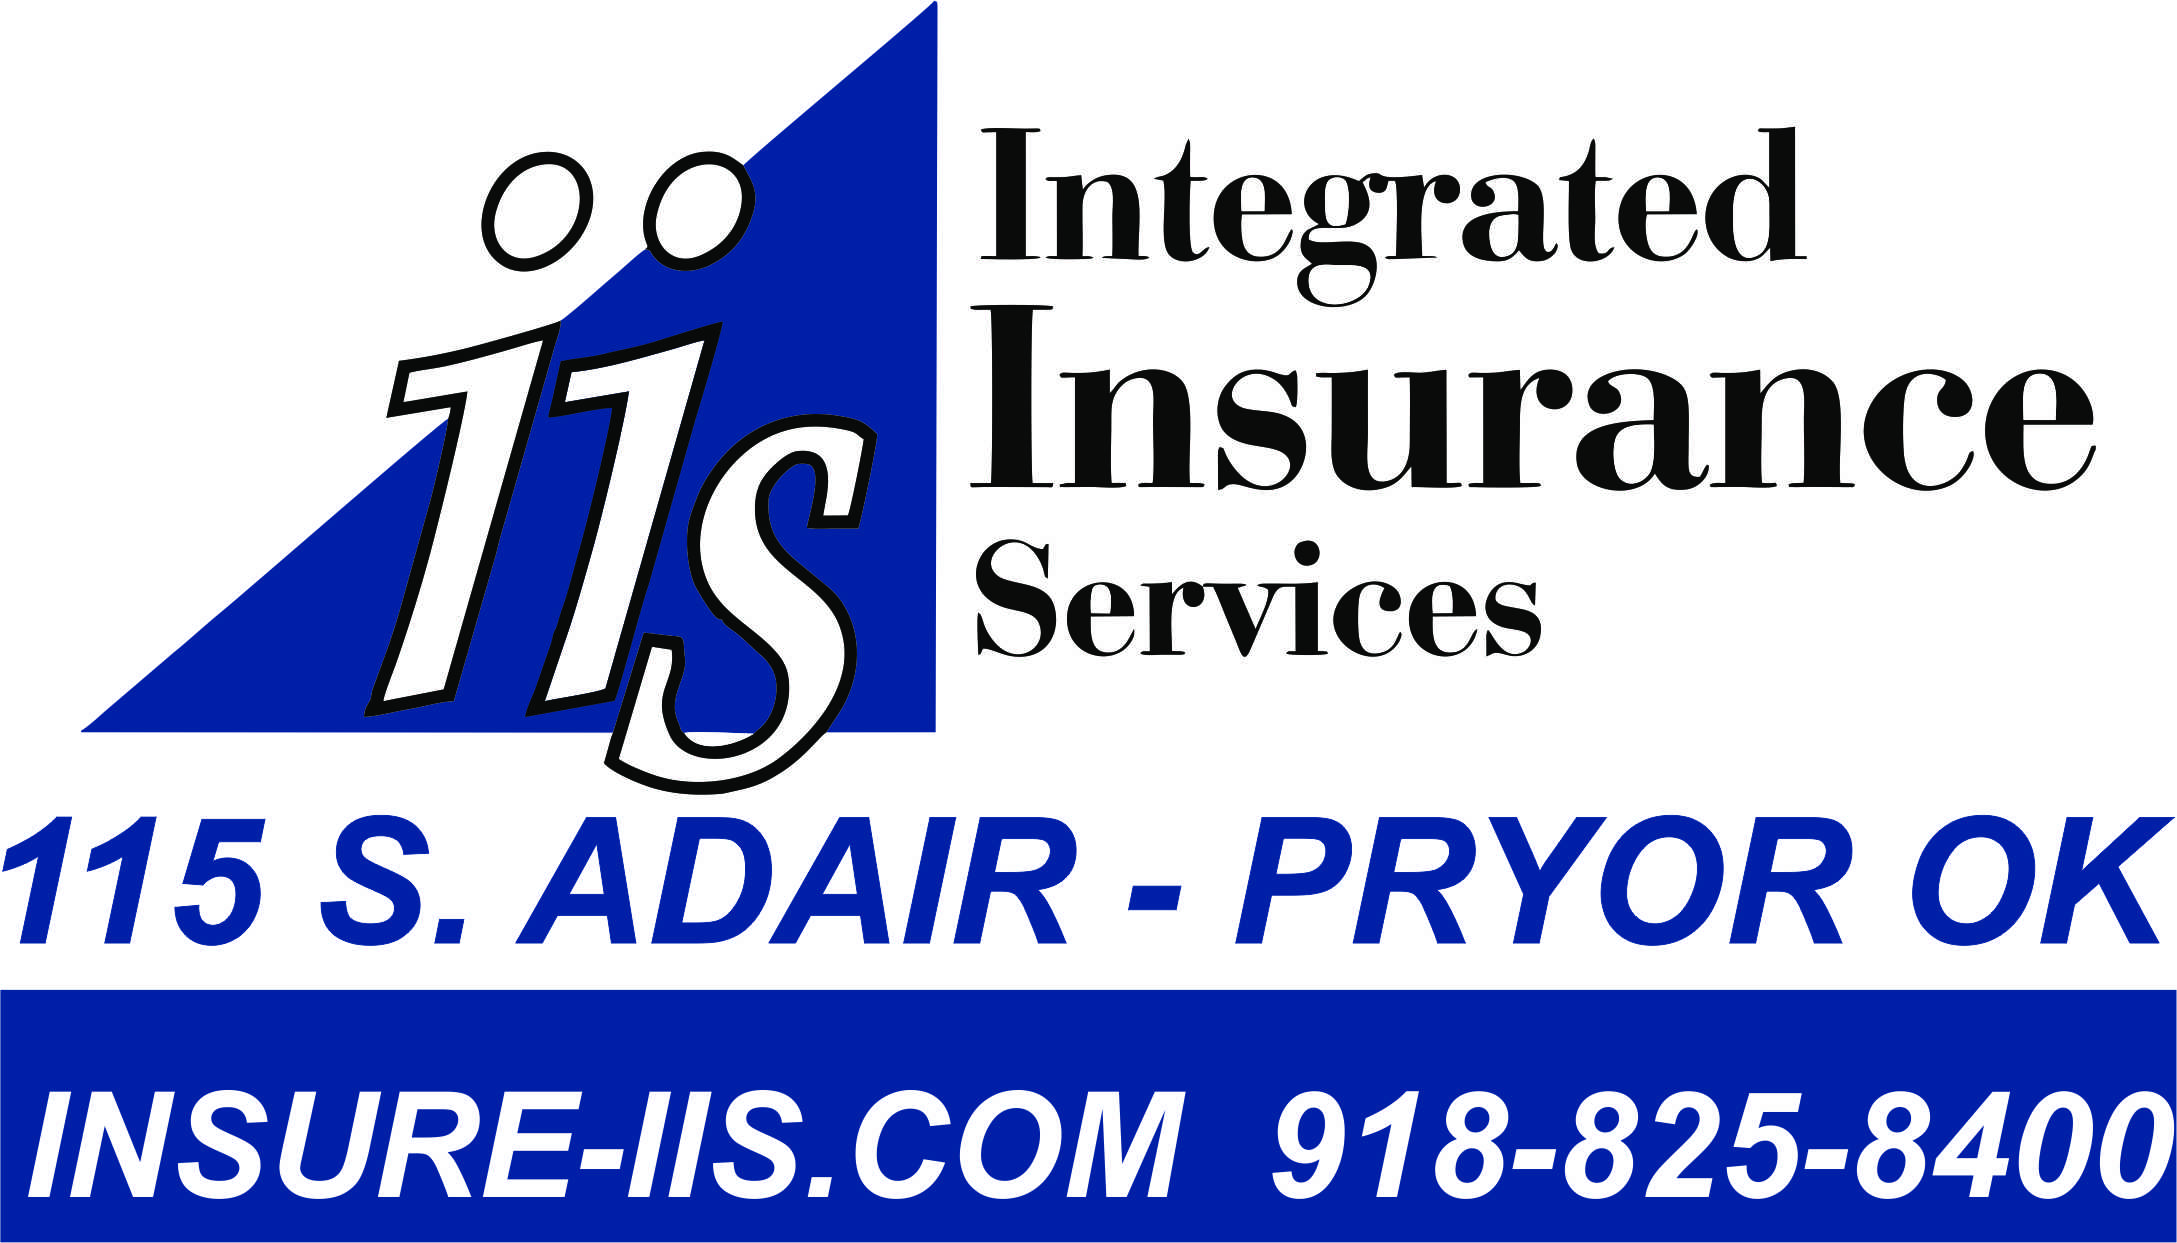 IIS LOGO WITH CONTACT INFO.jpg